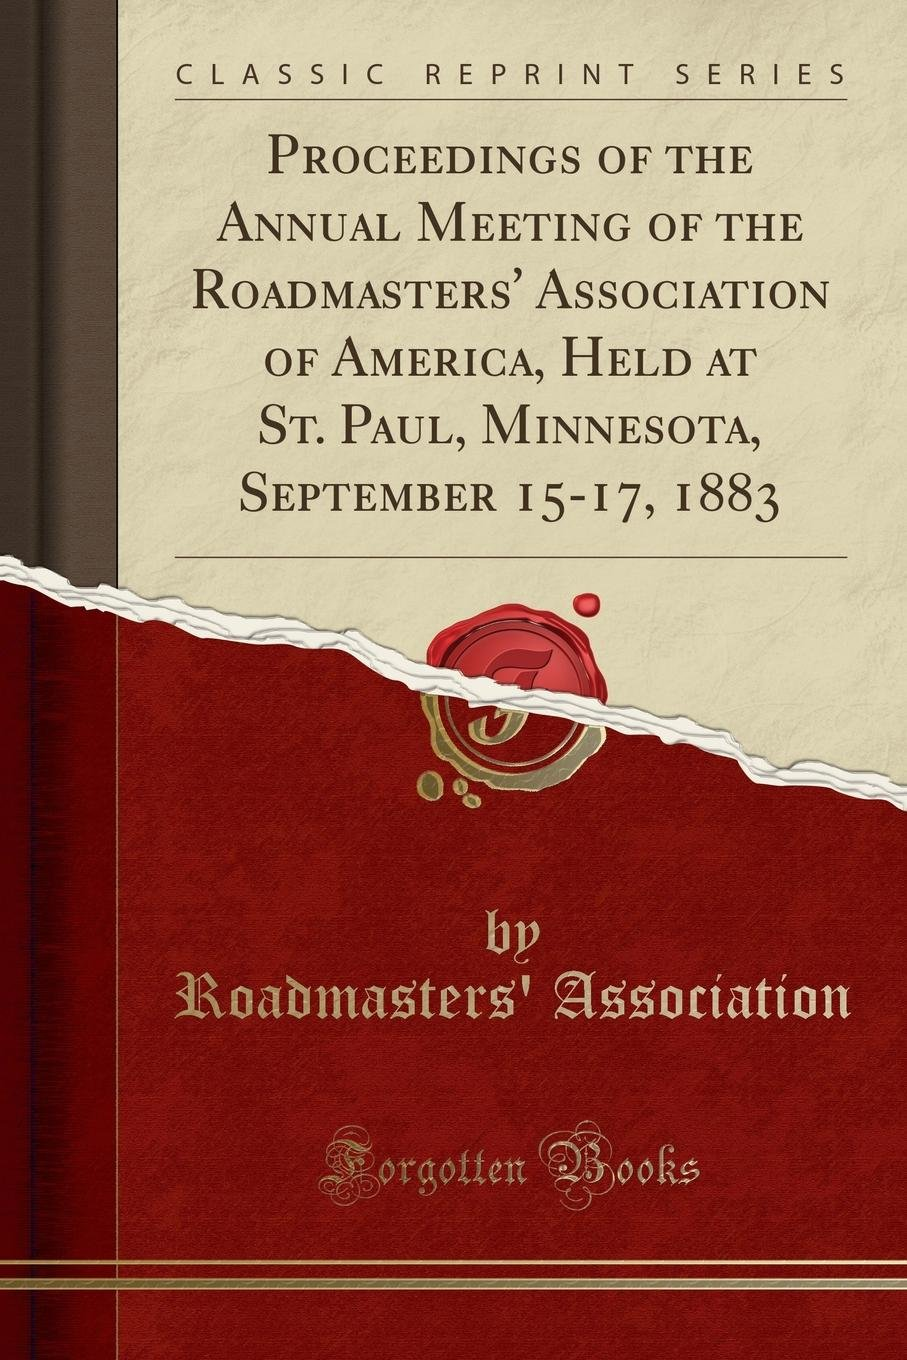 Proceedings of the Annual Meeting of the Roadmasters' Association of America, Held at St. Paul, Minnesota, September 15-17, 1883 (Classic Reprint) PDF